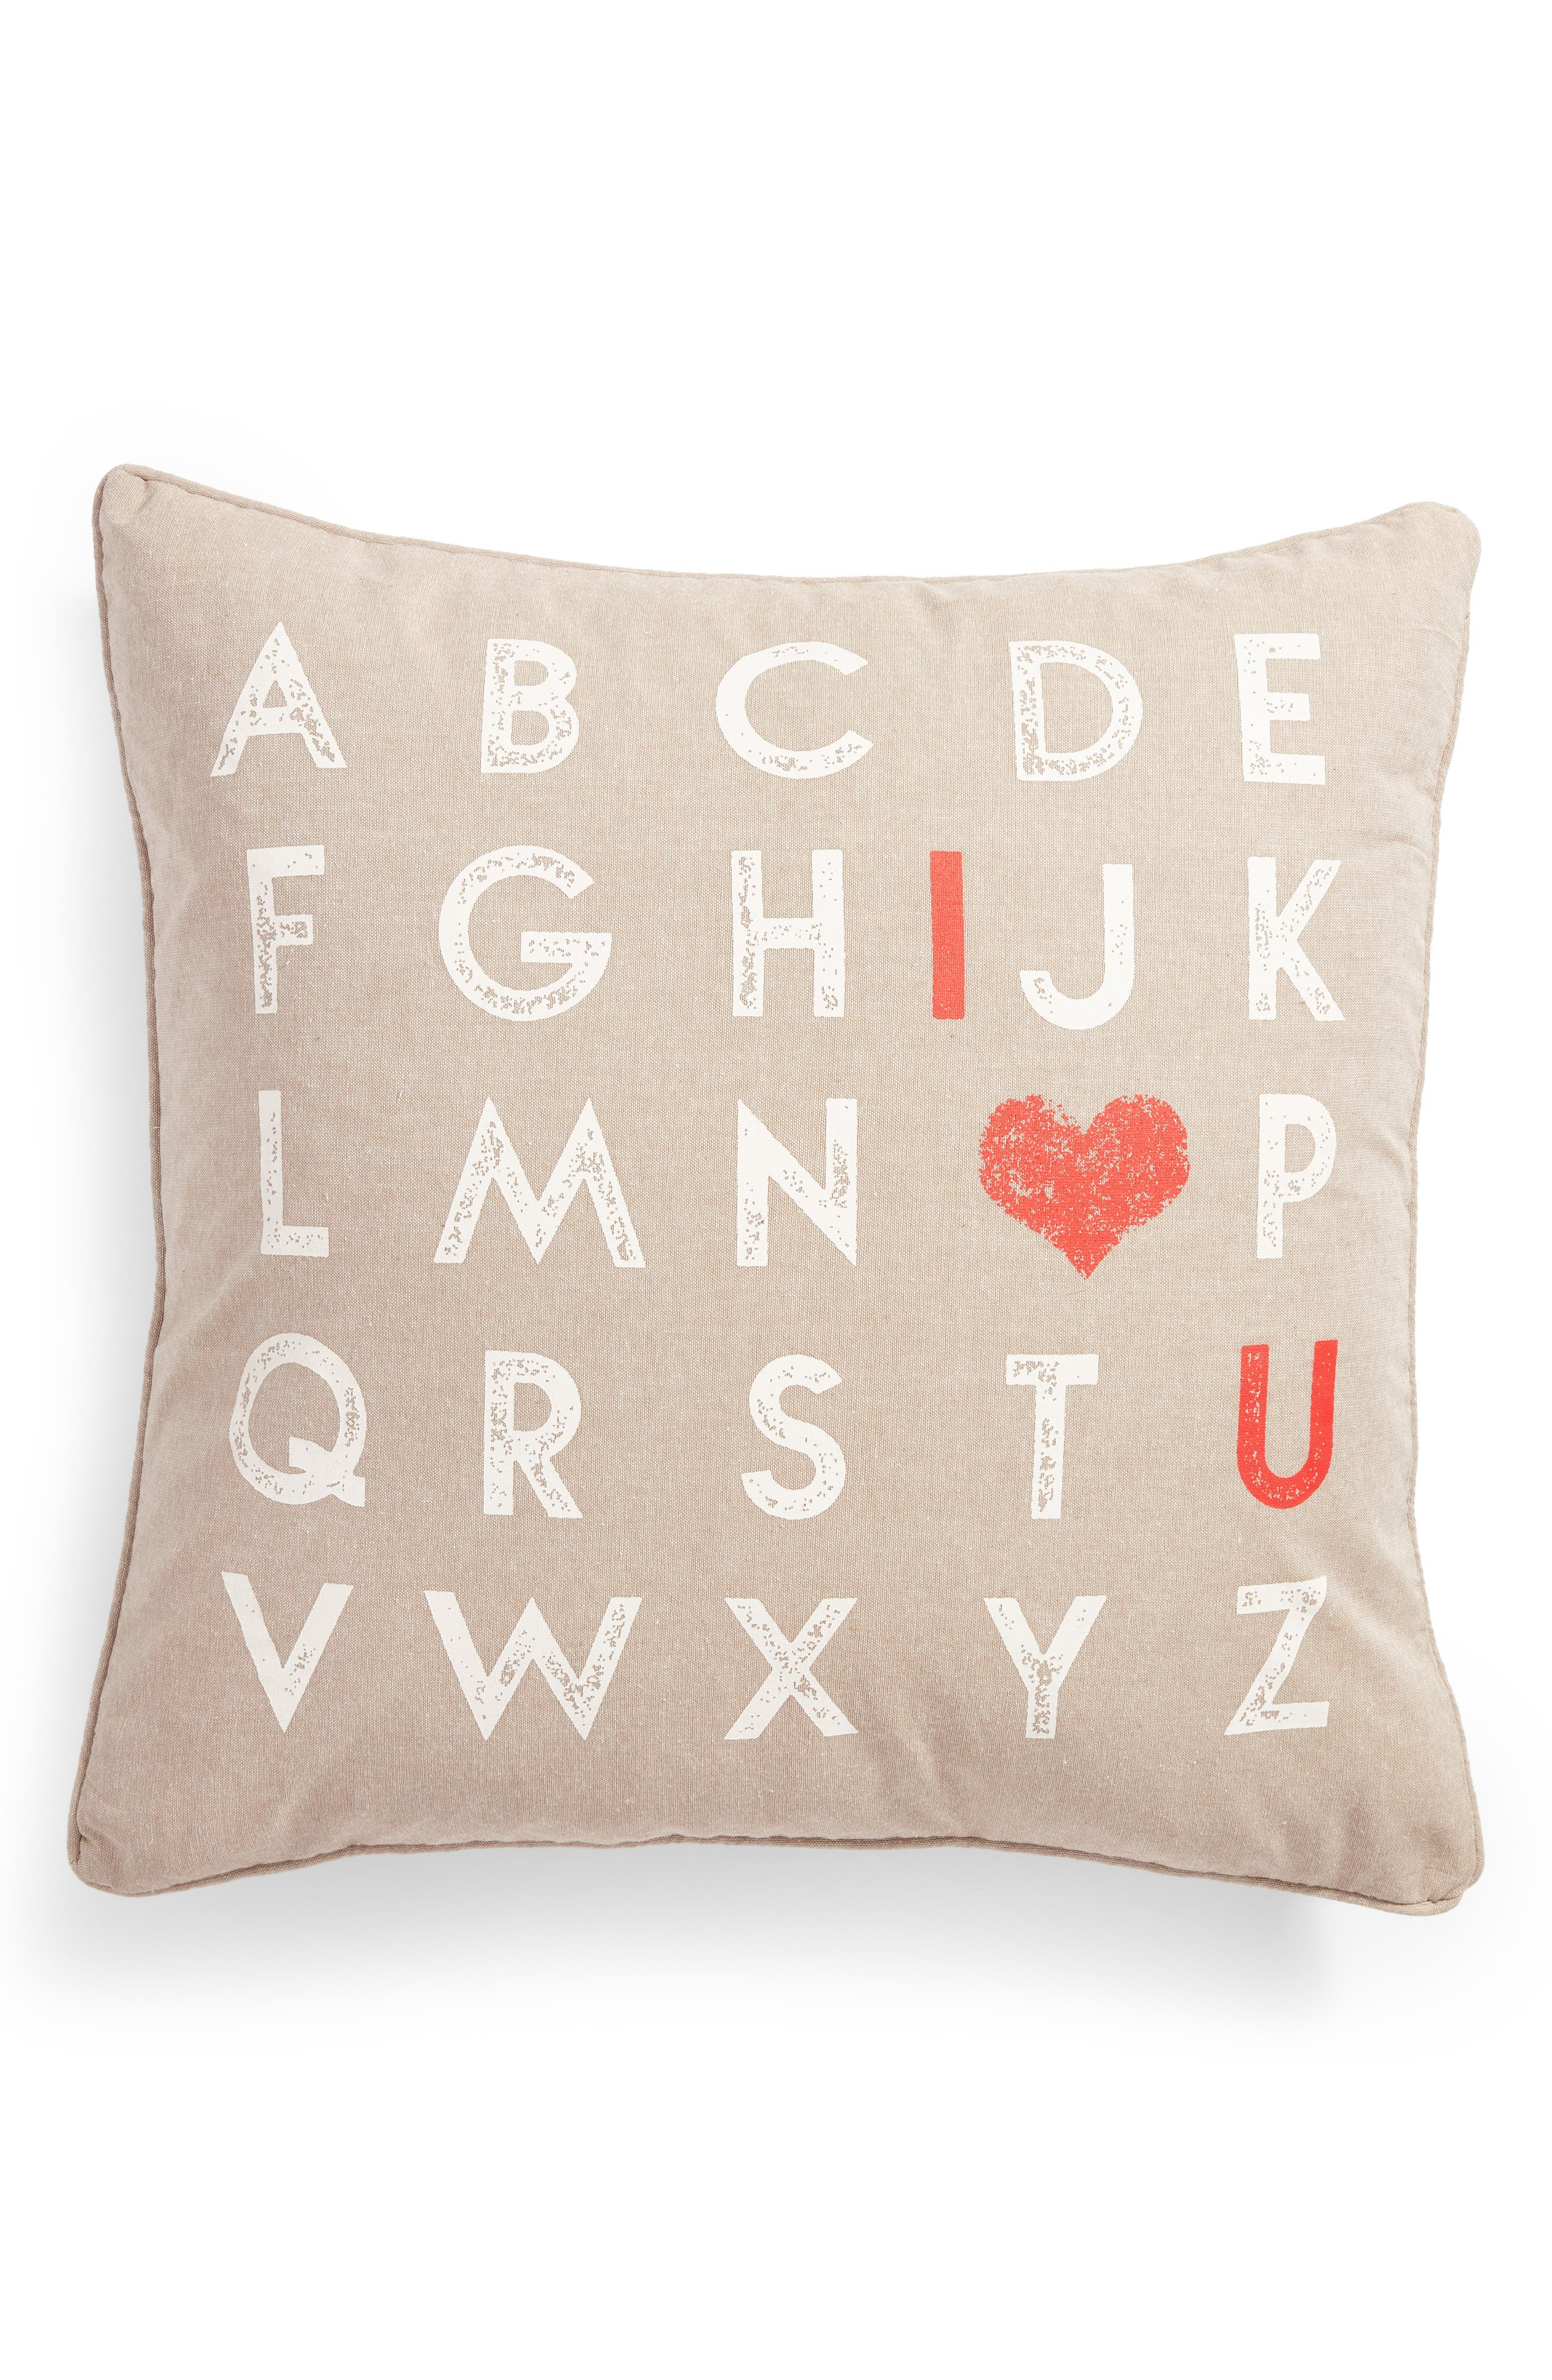 I Heart You Accent Pillow,                         Main,                         color, 250